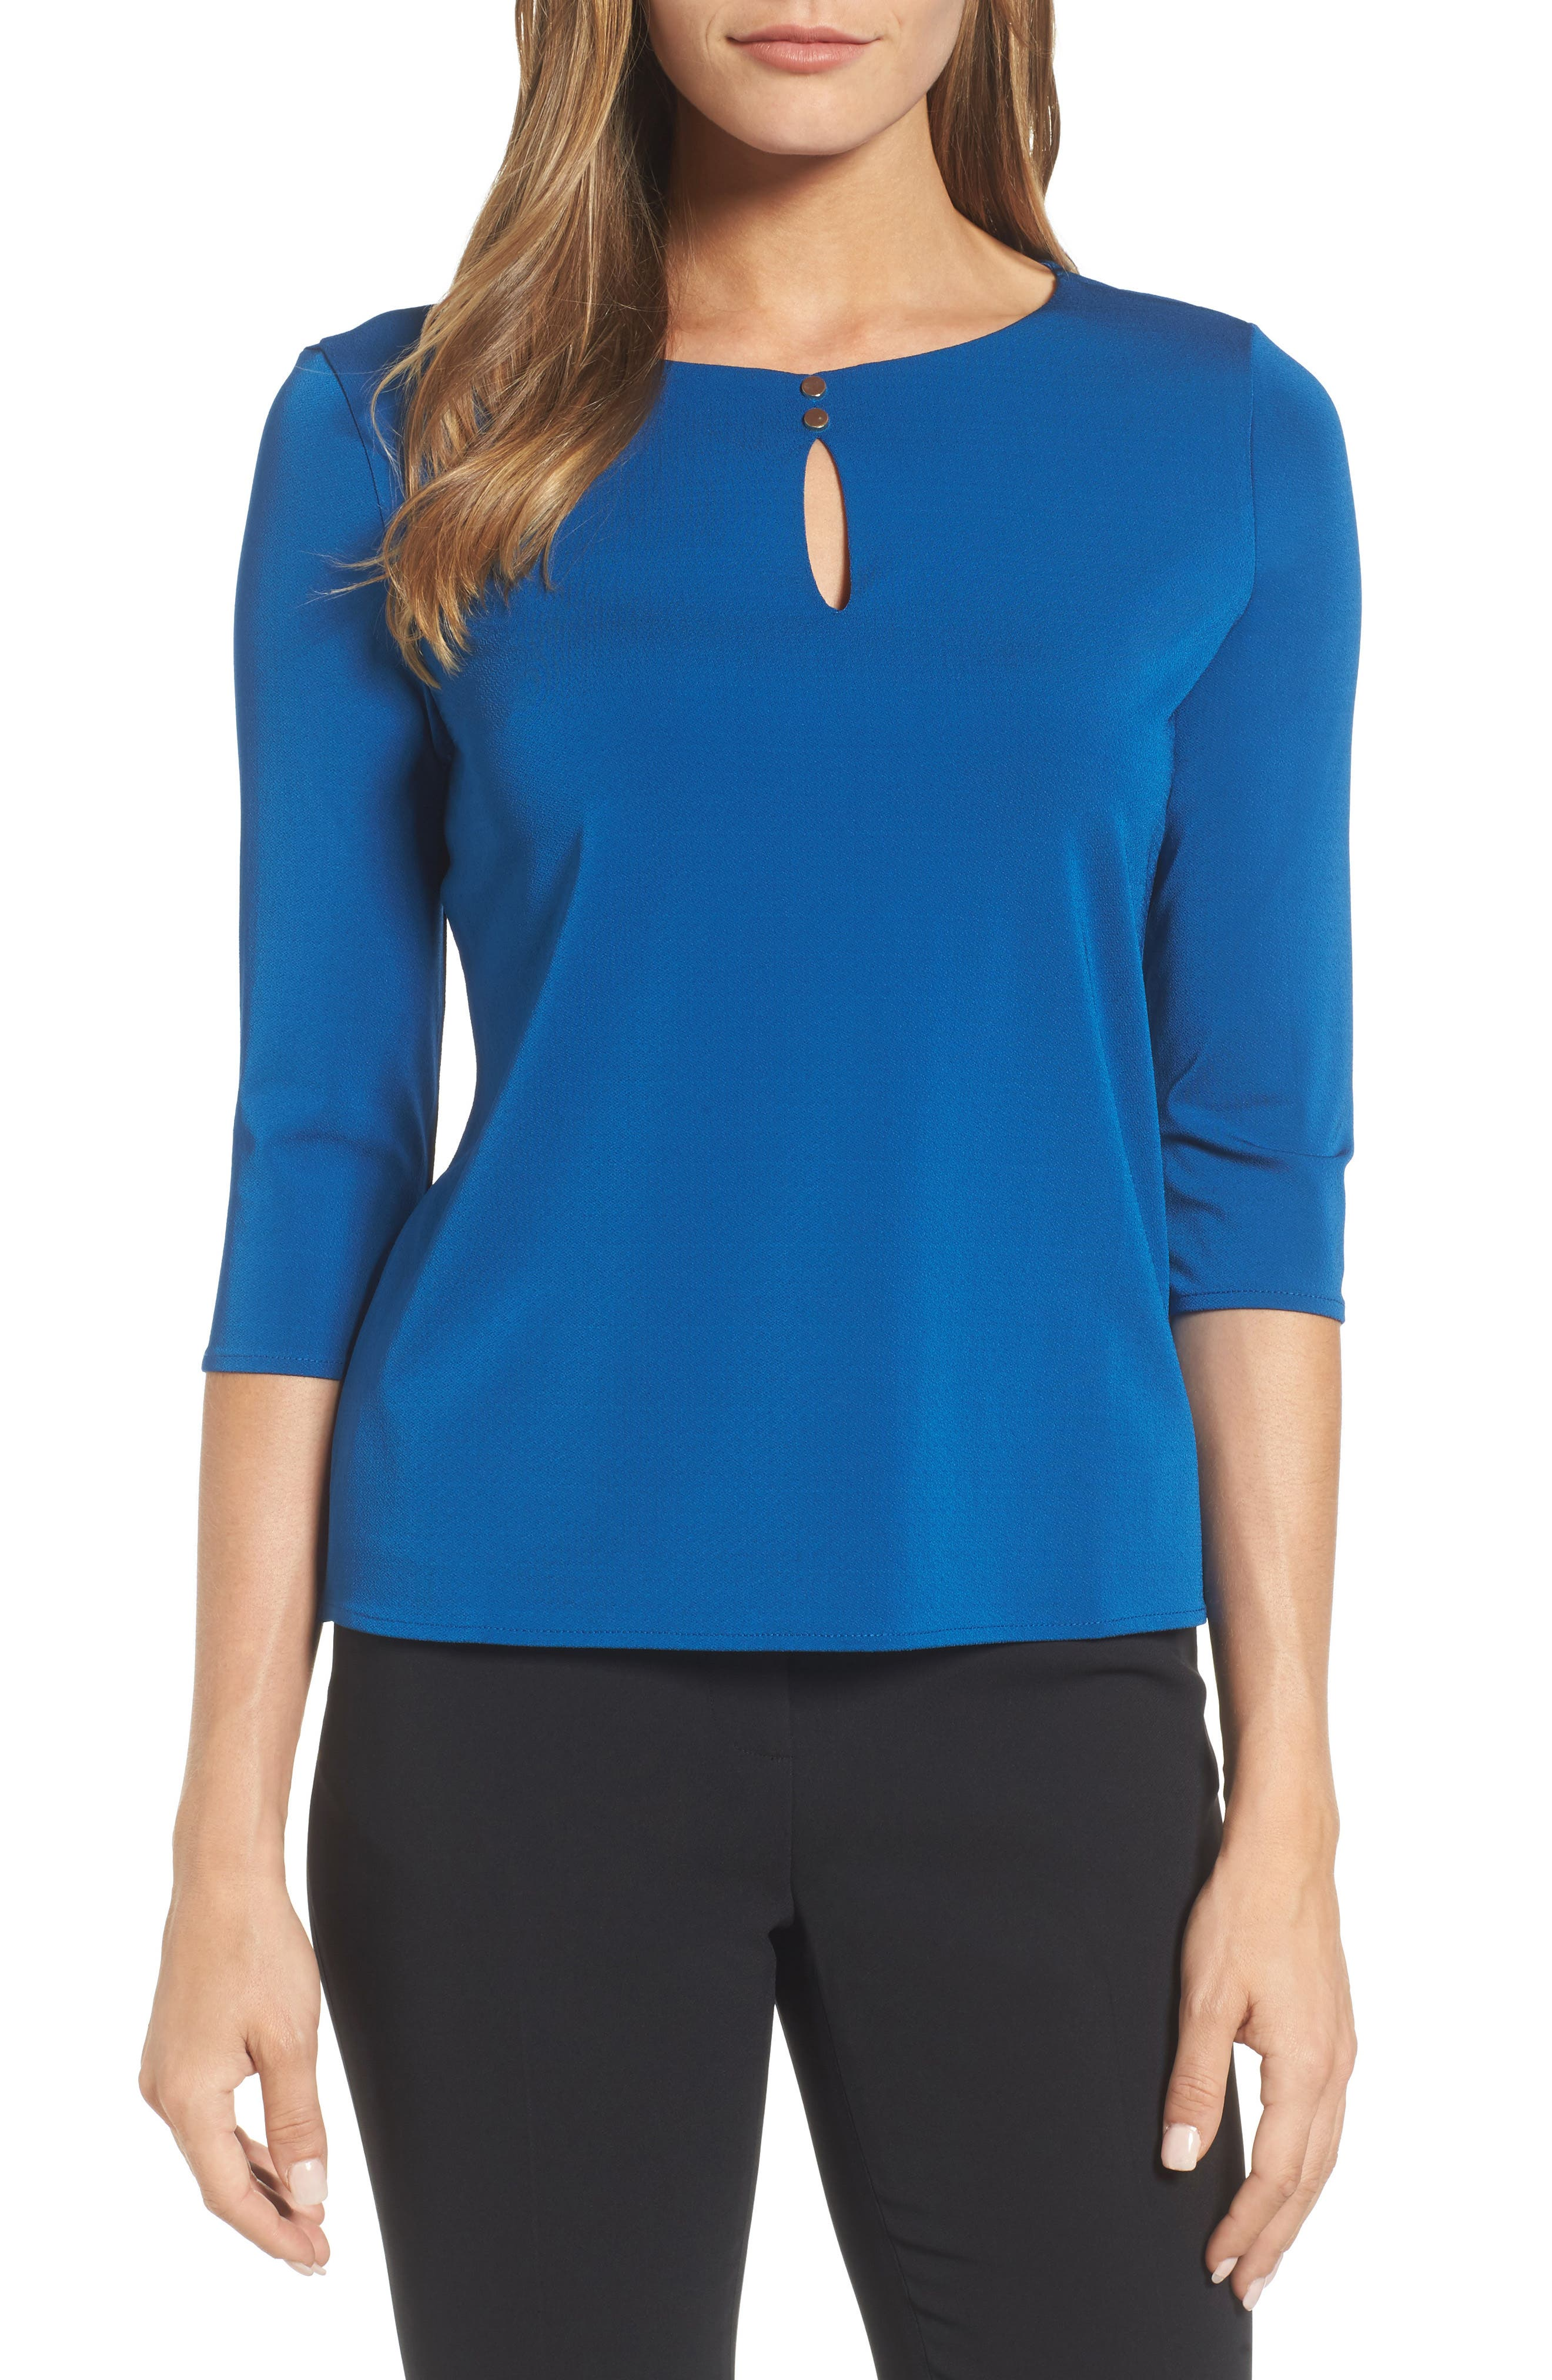 Alternate Image 1 Selected - BOSS Epina Keyhole Jersey Top (Nordstrom Exclusive)